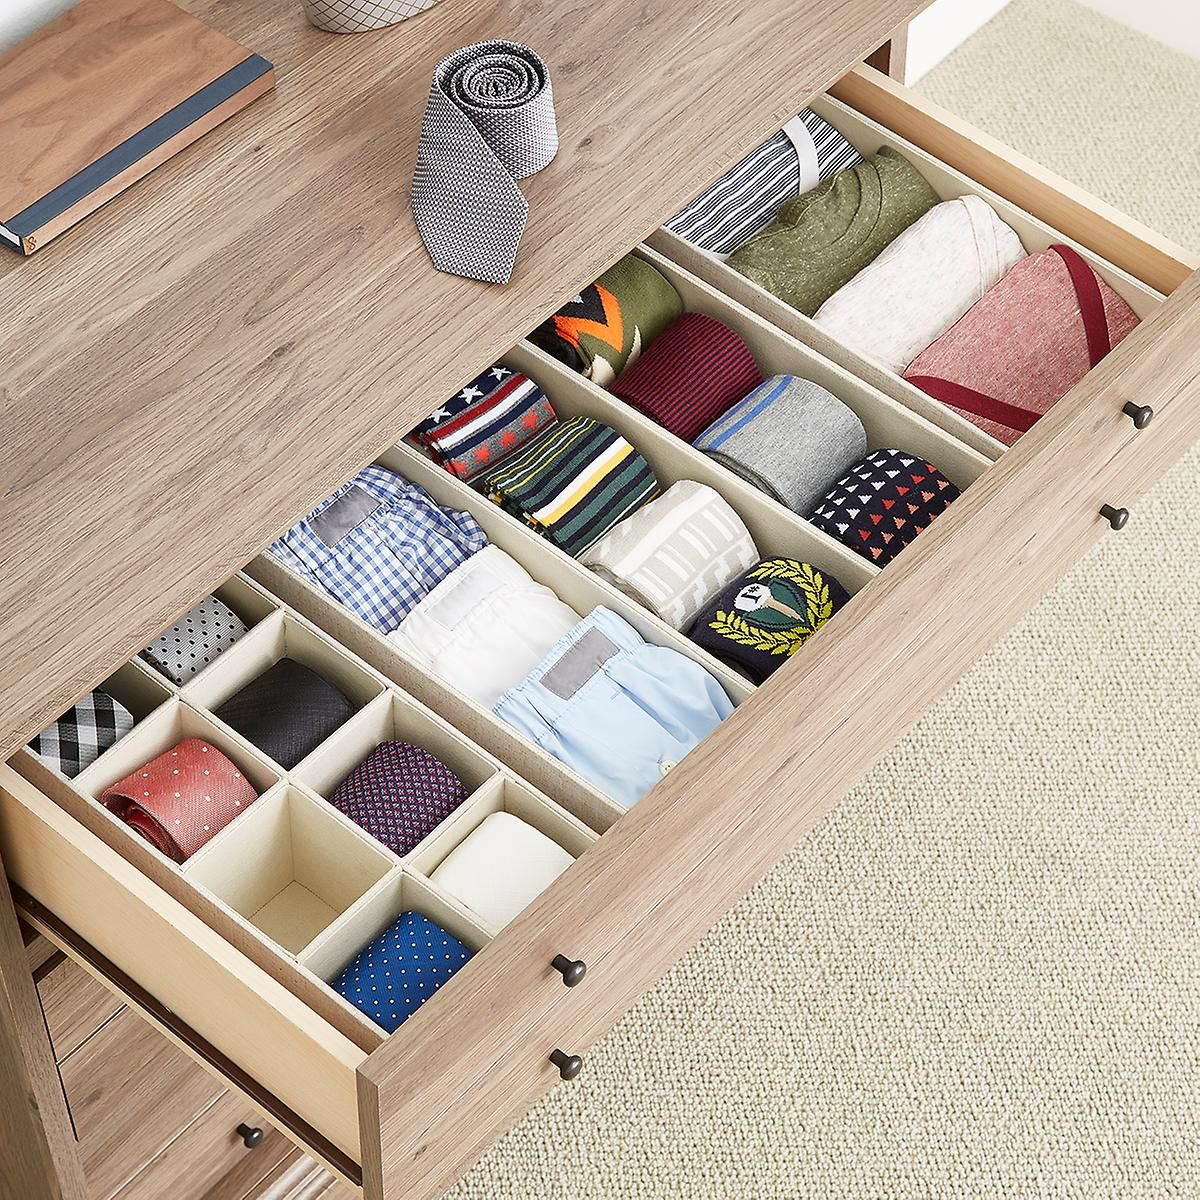 Linen Cambridge Drawer Organizers Organize Drawers Drawer Organizers Closet Organizer With Drawers